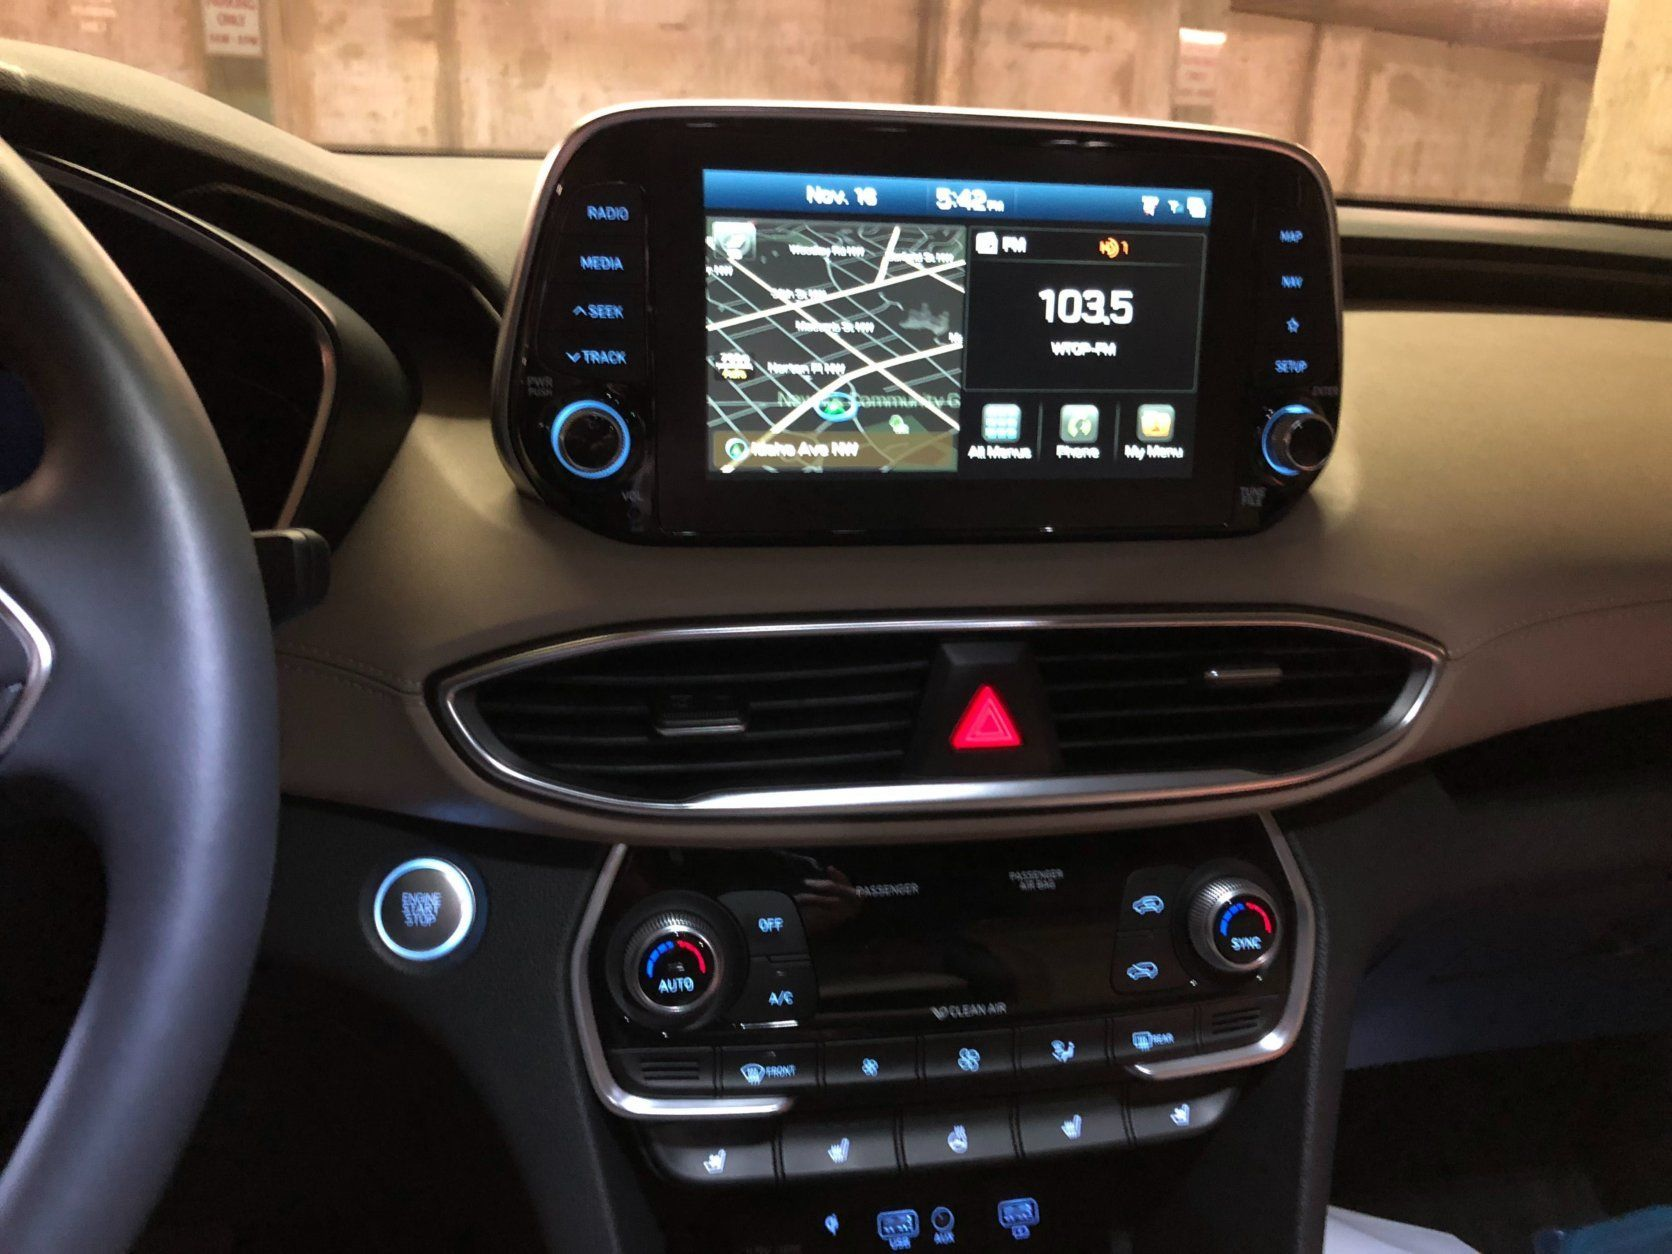 <p>The technology game is also updated for 2019. Wireless charging for all size phones is a bonus. The eight-inch touchscreen works the first time, plus knobs are still here for both volume and tuning. I'm not as crazy about the almost glued-on look of the large NAV screen on top of the dash, but it seems like others are doing it, so I should get used to it. No complaints about the premium sound system. It's one of the better sounding in a Hyundai.</p> <p>A large standard panoramic sunroof lets in a lot of light and air when open.</p>